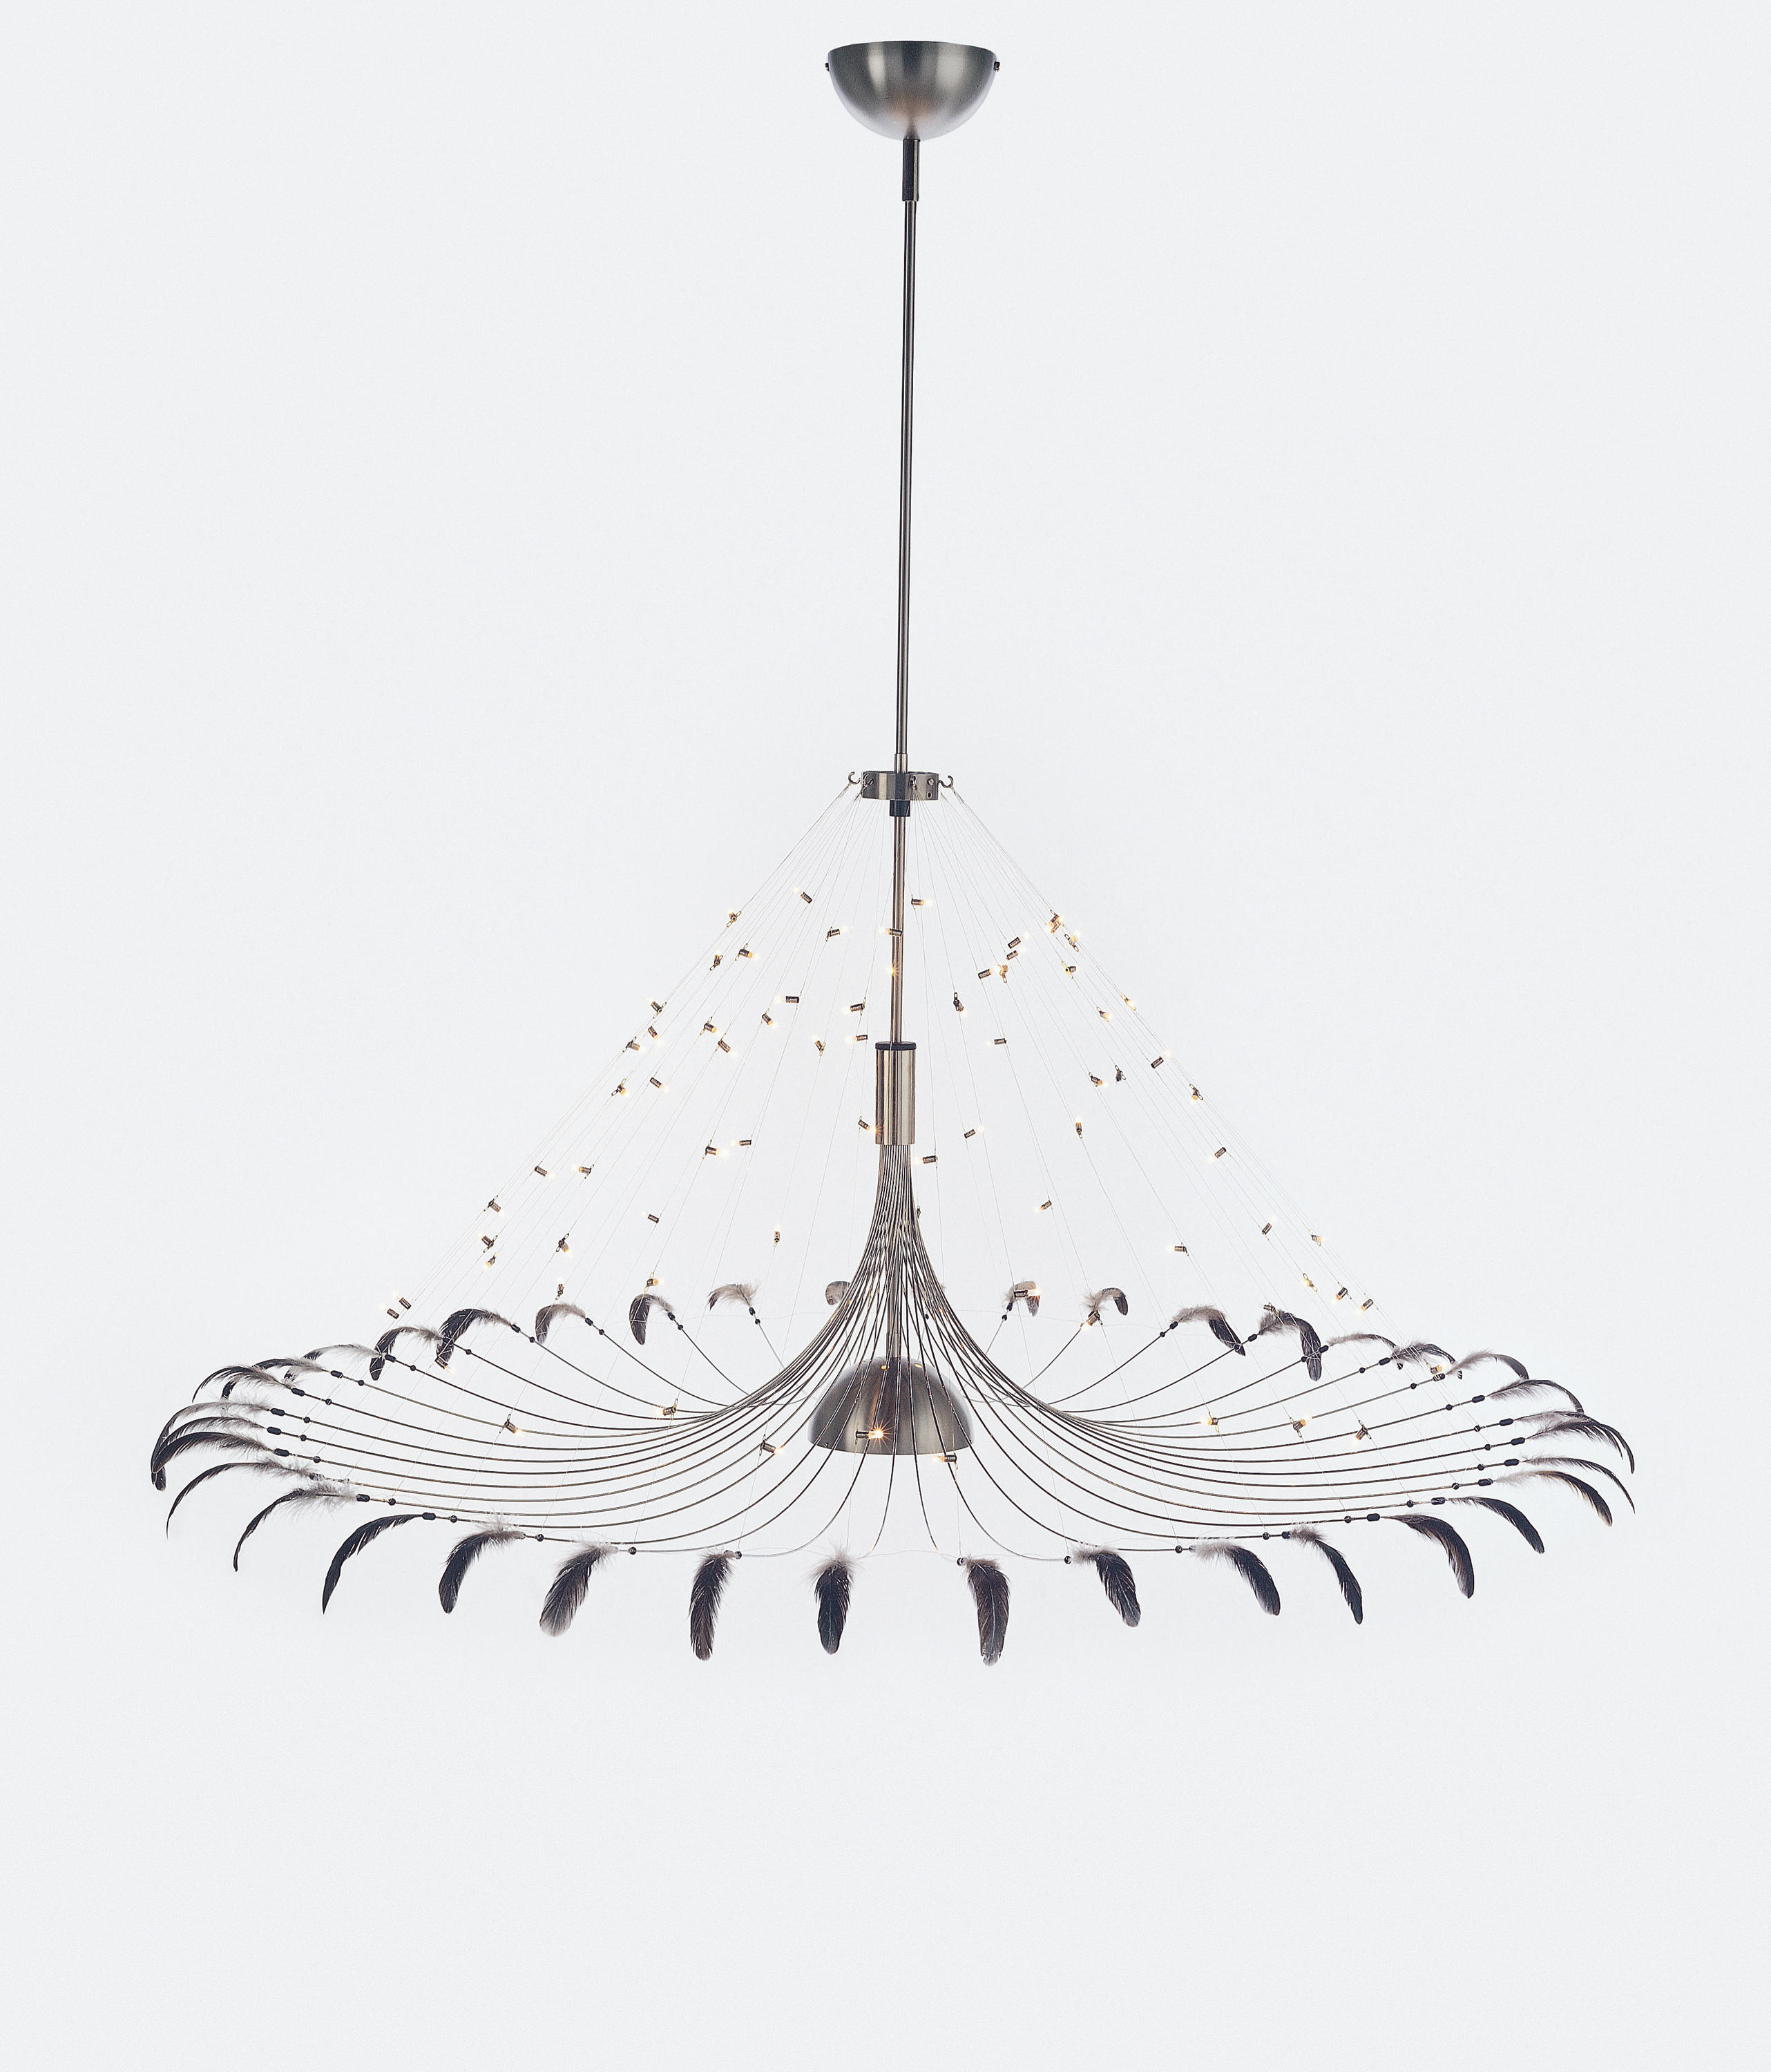 Bird suspended lamp general lighting from quasar architonic bird suspended lamp by quasar general lighting arubaitofo Choice Image